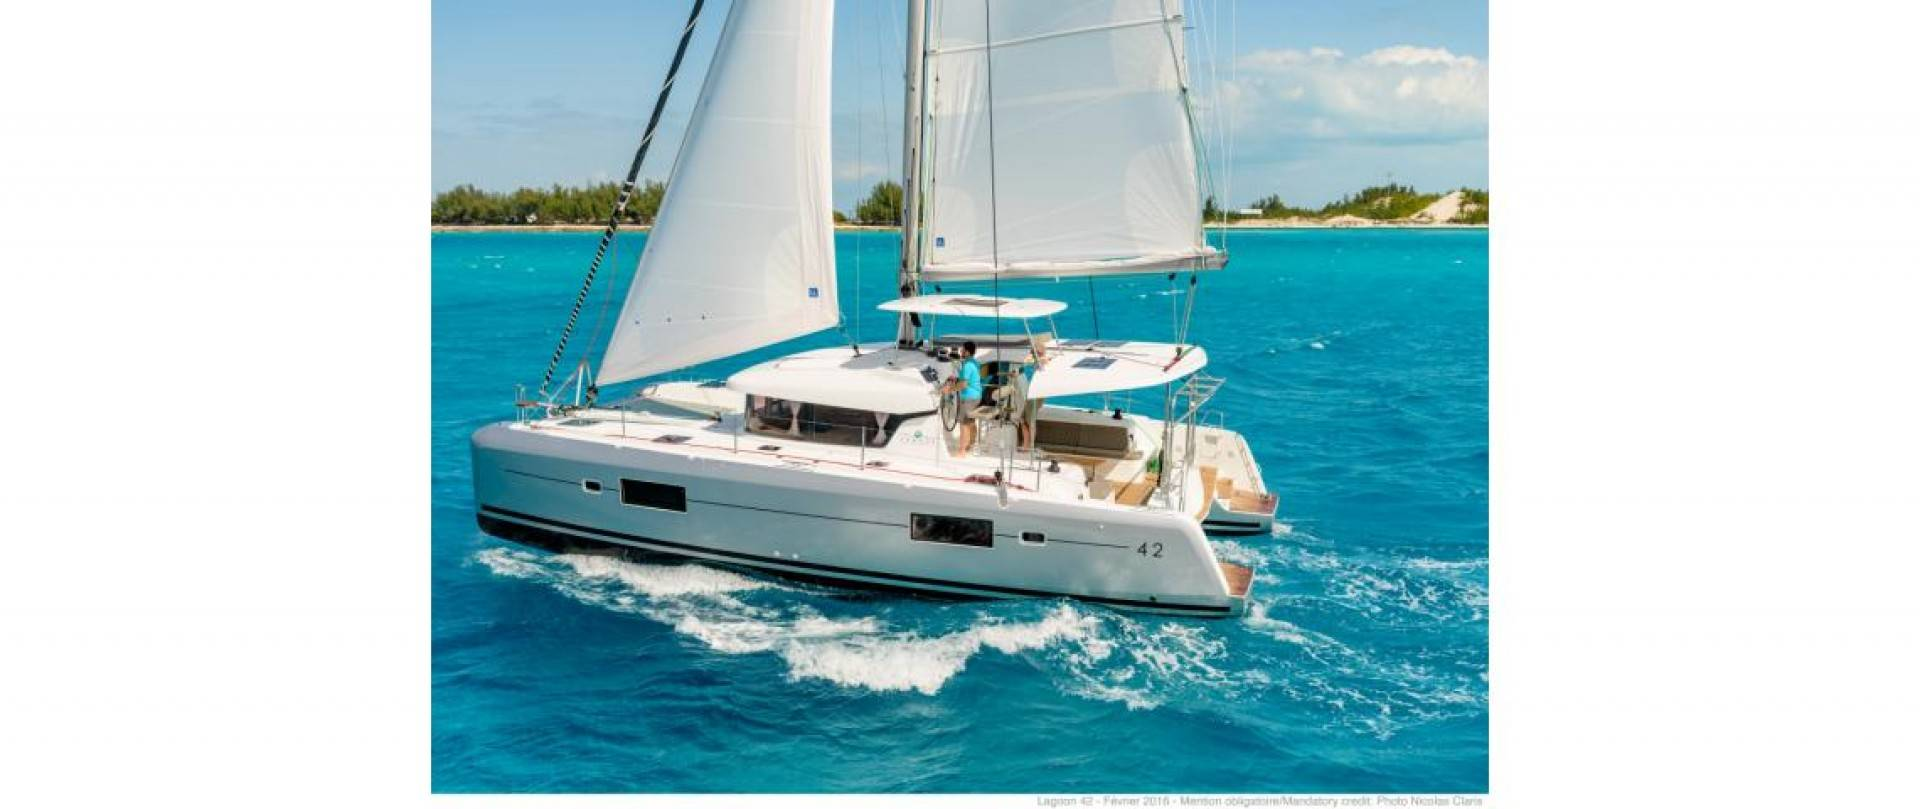 Lagoon 42 Catamaran - new 2017